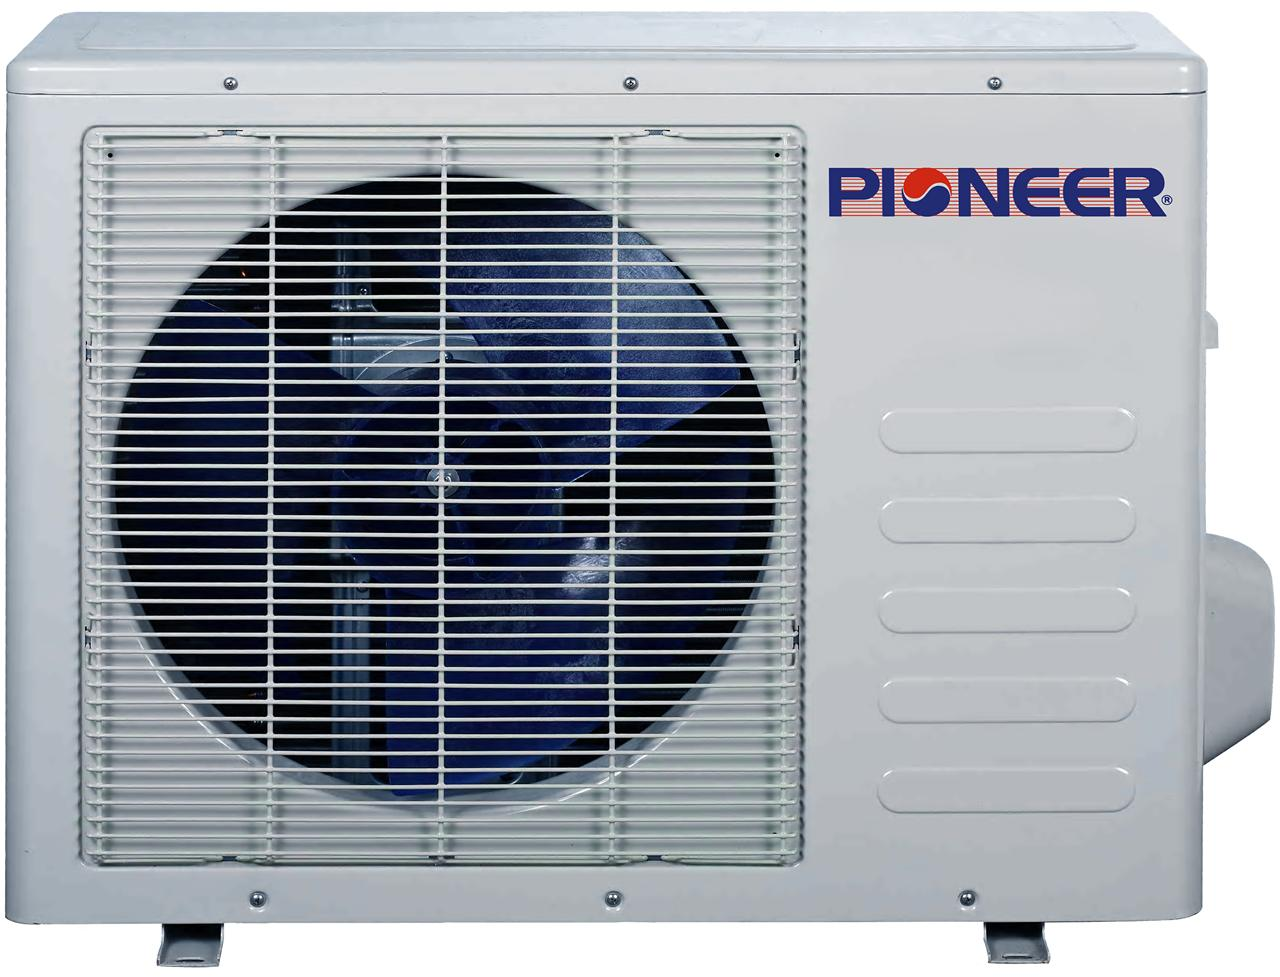 #0D1122 12000 BTU PIONEER 19 SEER INVERTER Ductless Mini Split Air  Highest Rated 12716 Inverter Split Air Conditioner img with 1280x977 px on helpvideos.info - Air Conditioners, Air Coolers and more